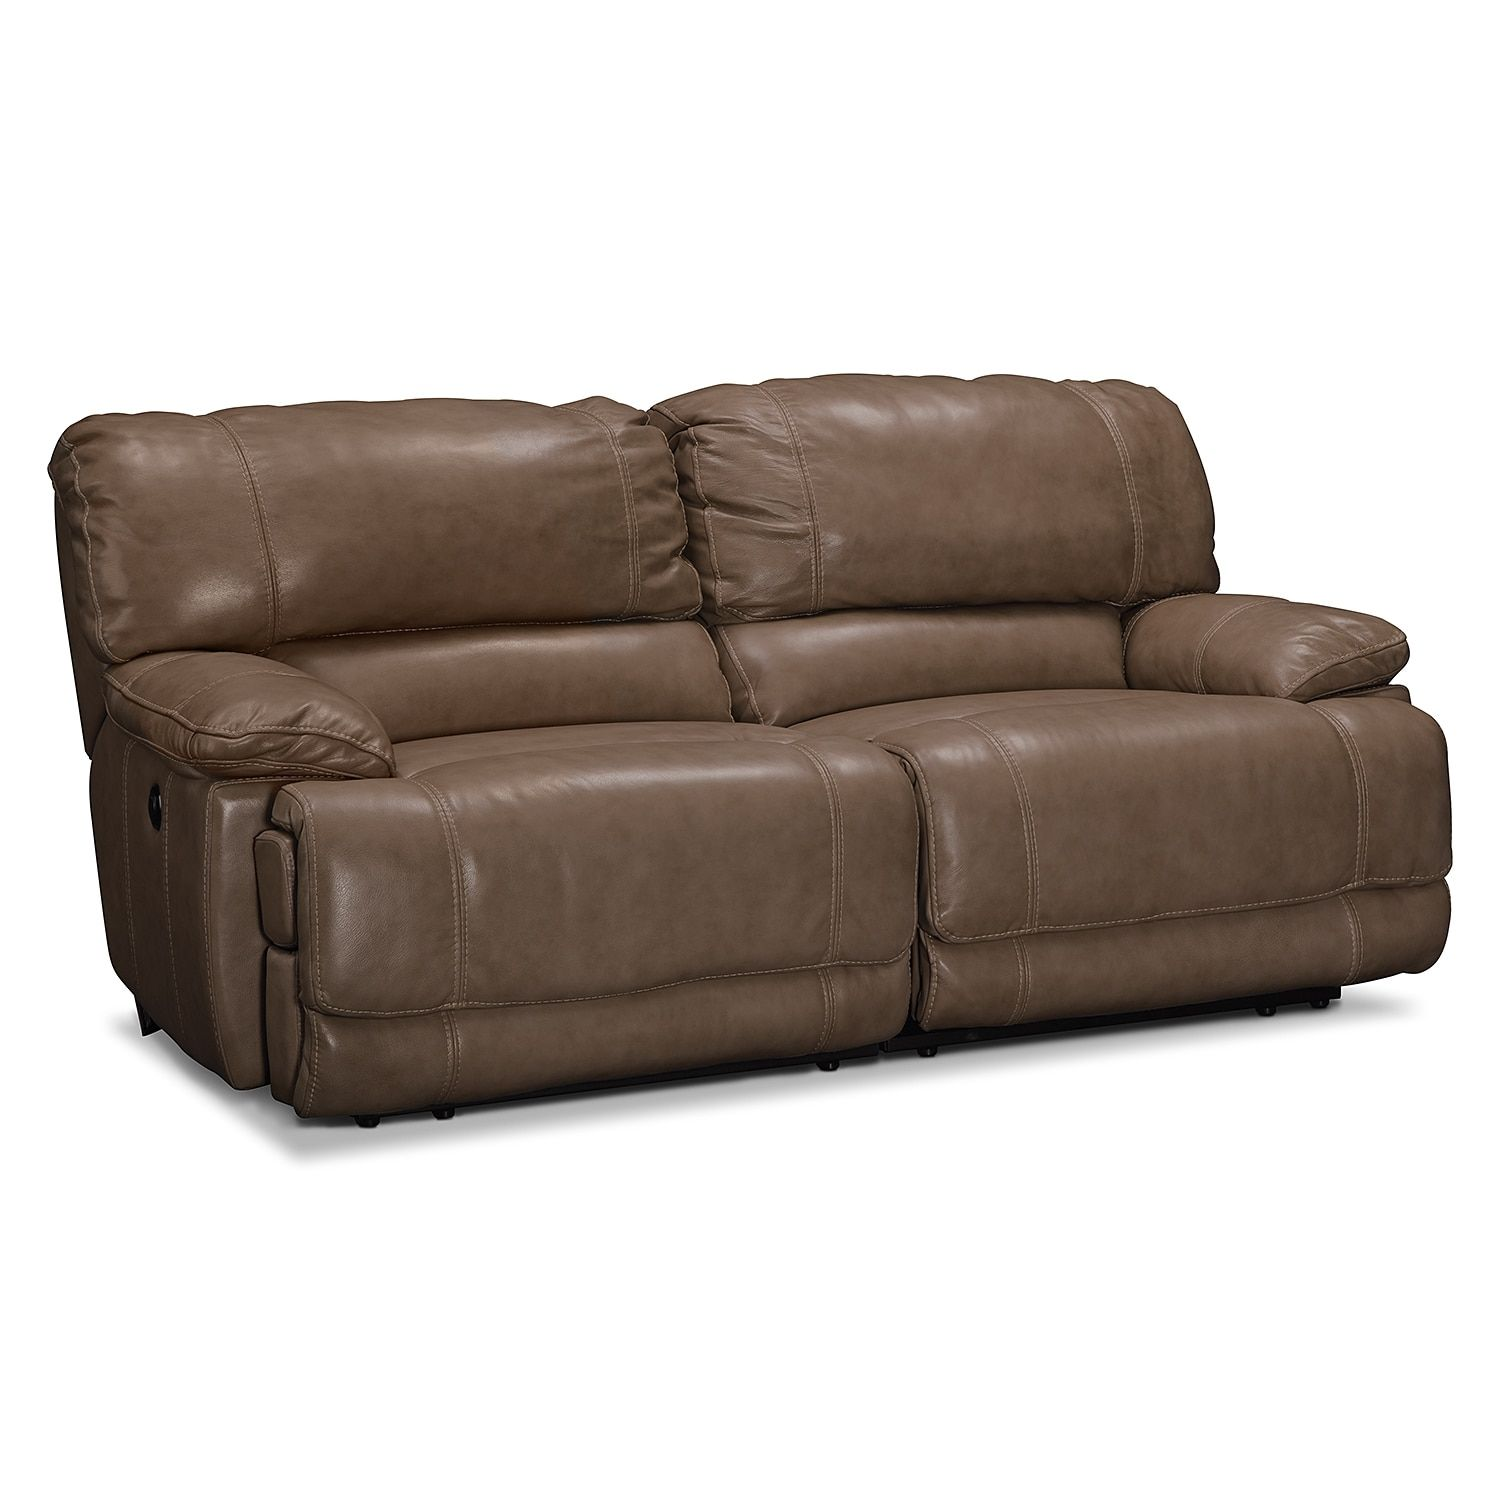 St Malo Power Reclining Sofa Taupe Reclining Sofa Taupe And  ~ Sofa Bed City Furniture